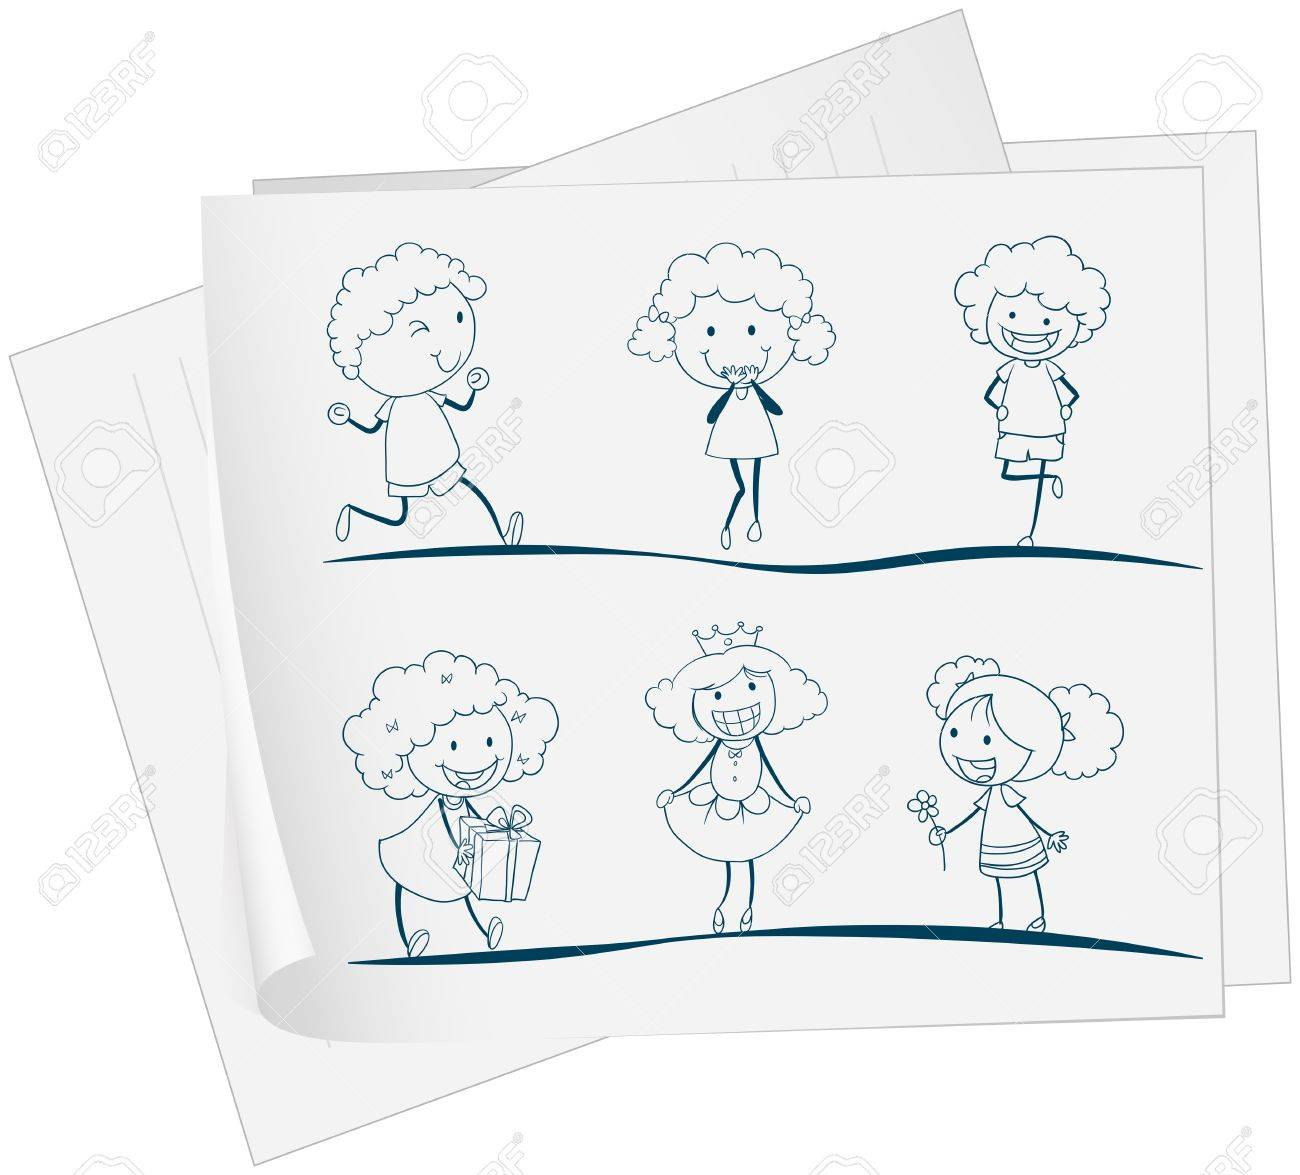 Illustration of a paper with a drawing of a girl in different attires on a white background Stock Vector - 19301450